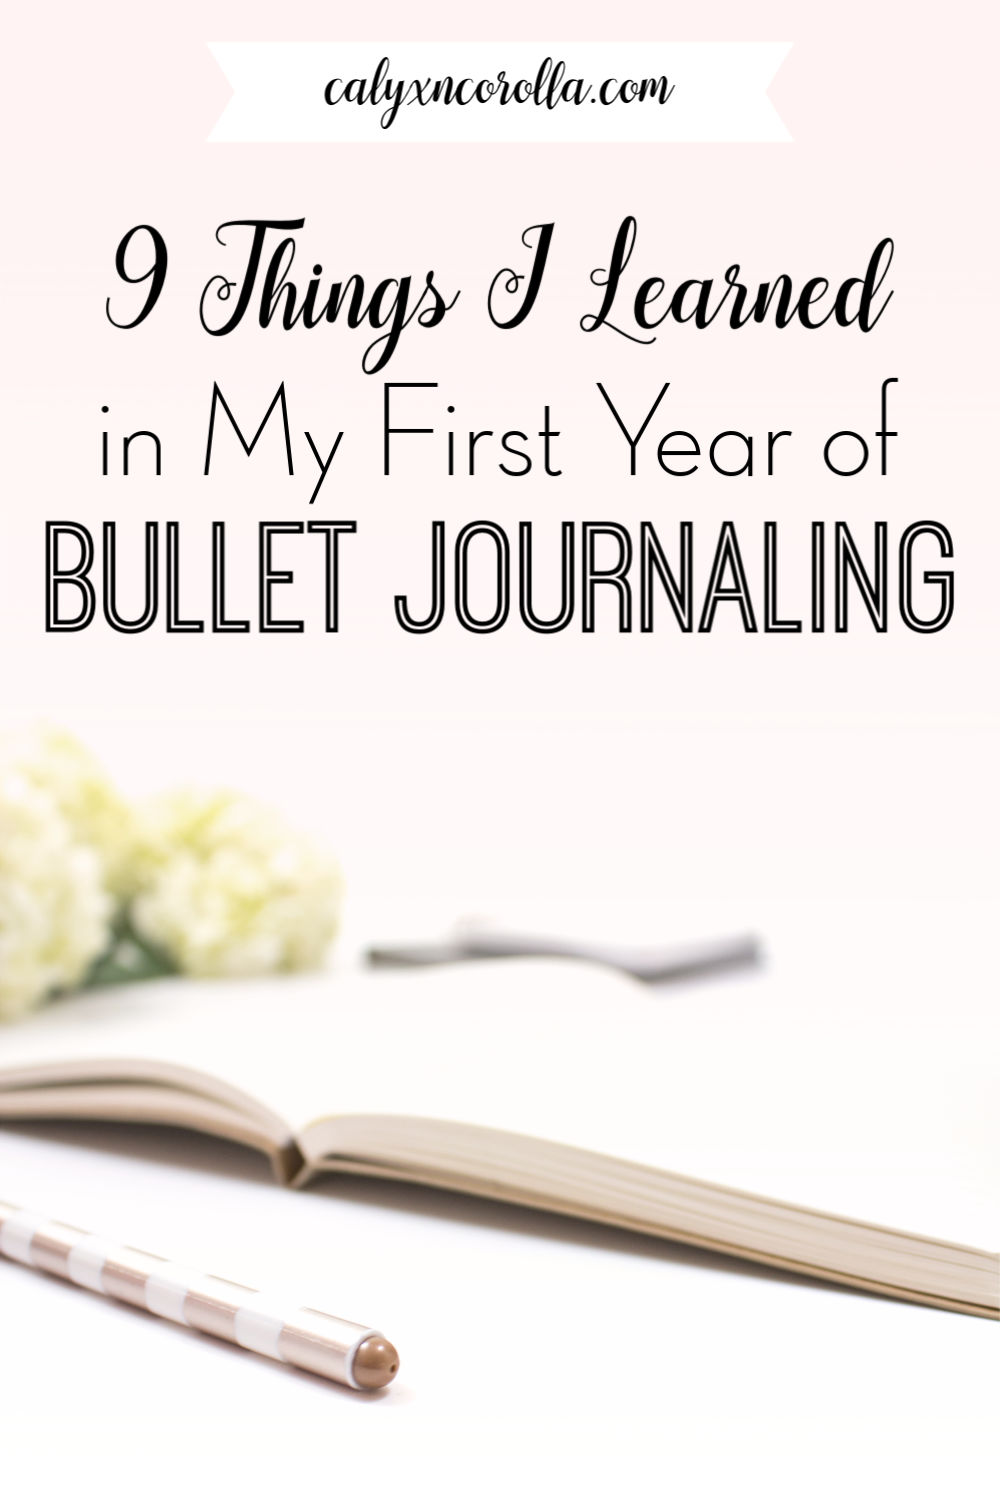 9 Things I Learned in My First Year of Bullet Journaling | Calyx and Corolla